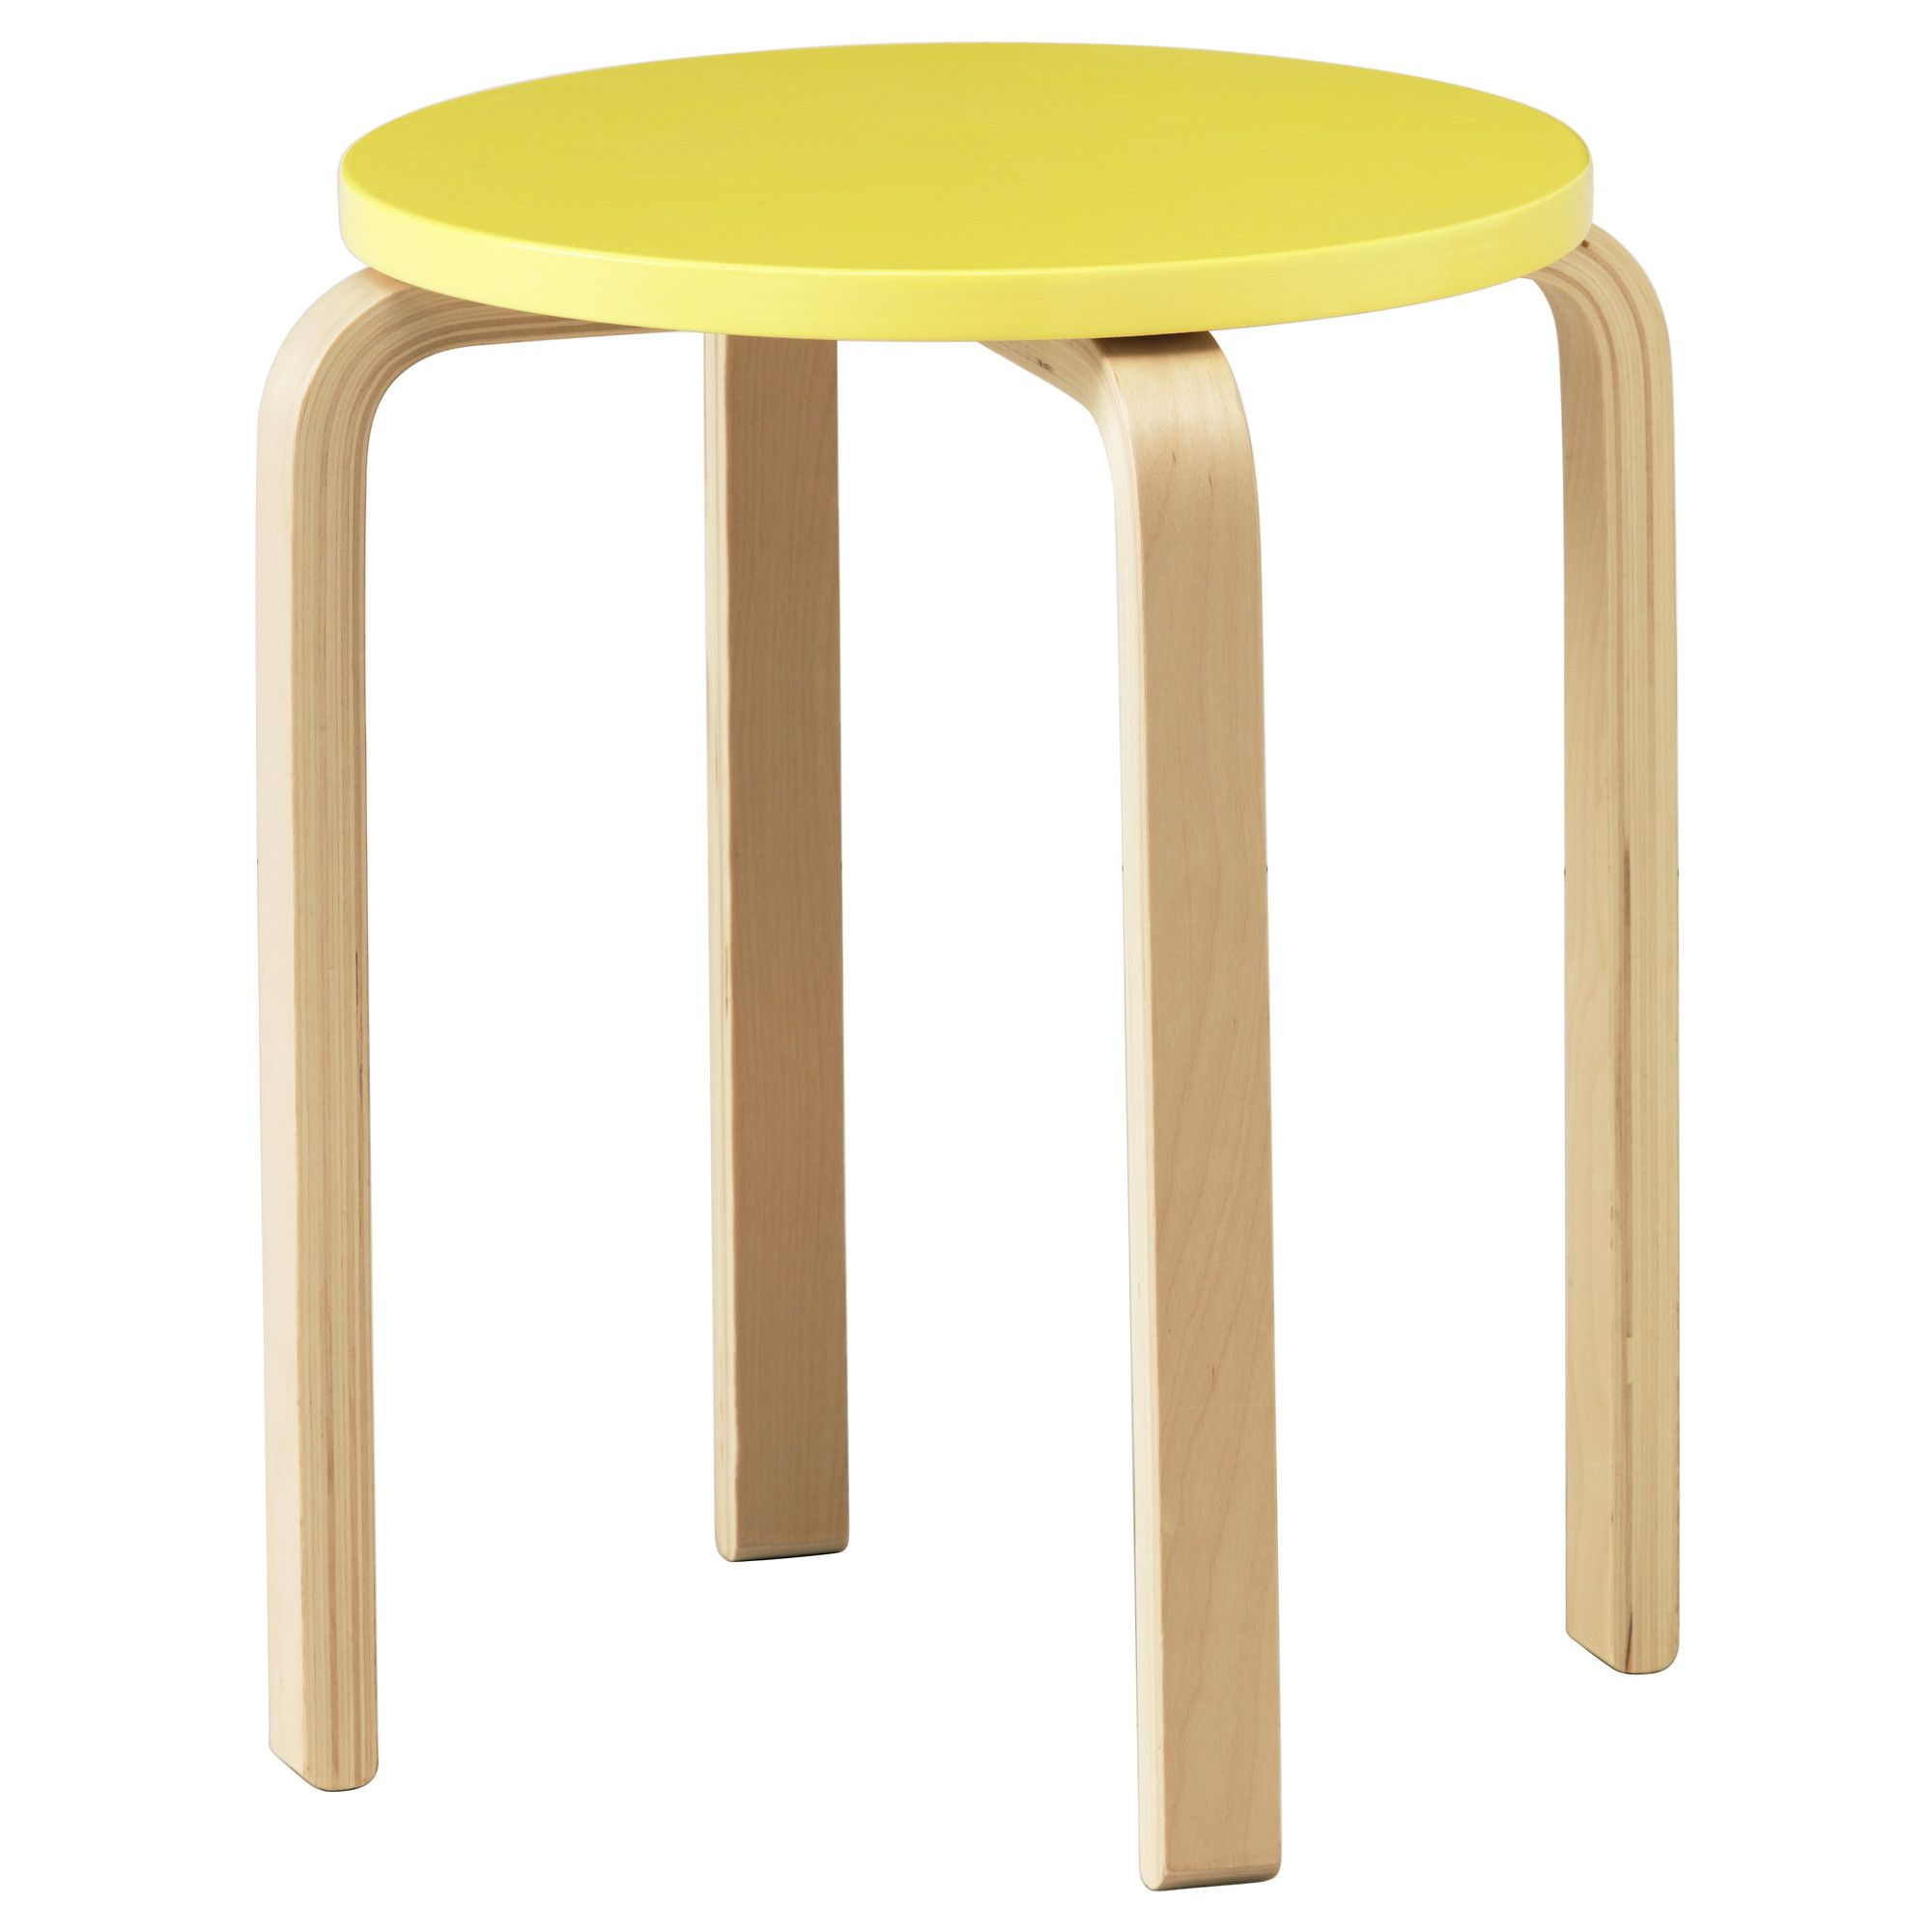 IKEA FROSTA Stool The stool can be stacked so you can keep several on hand and store them in the same space as one Need space